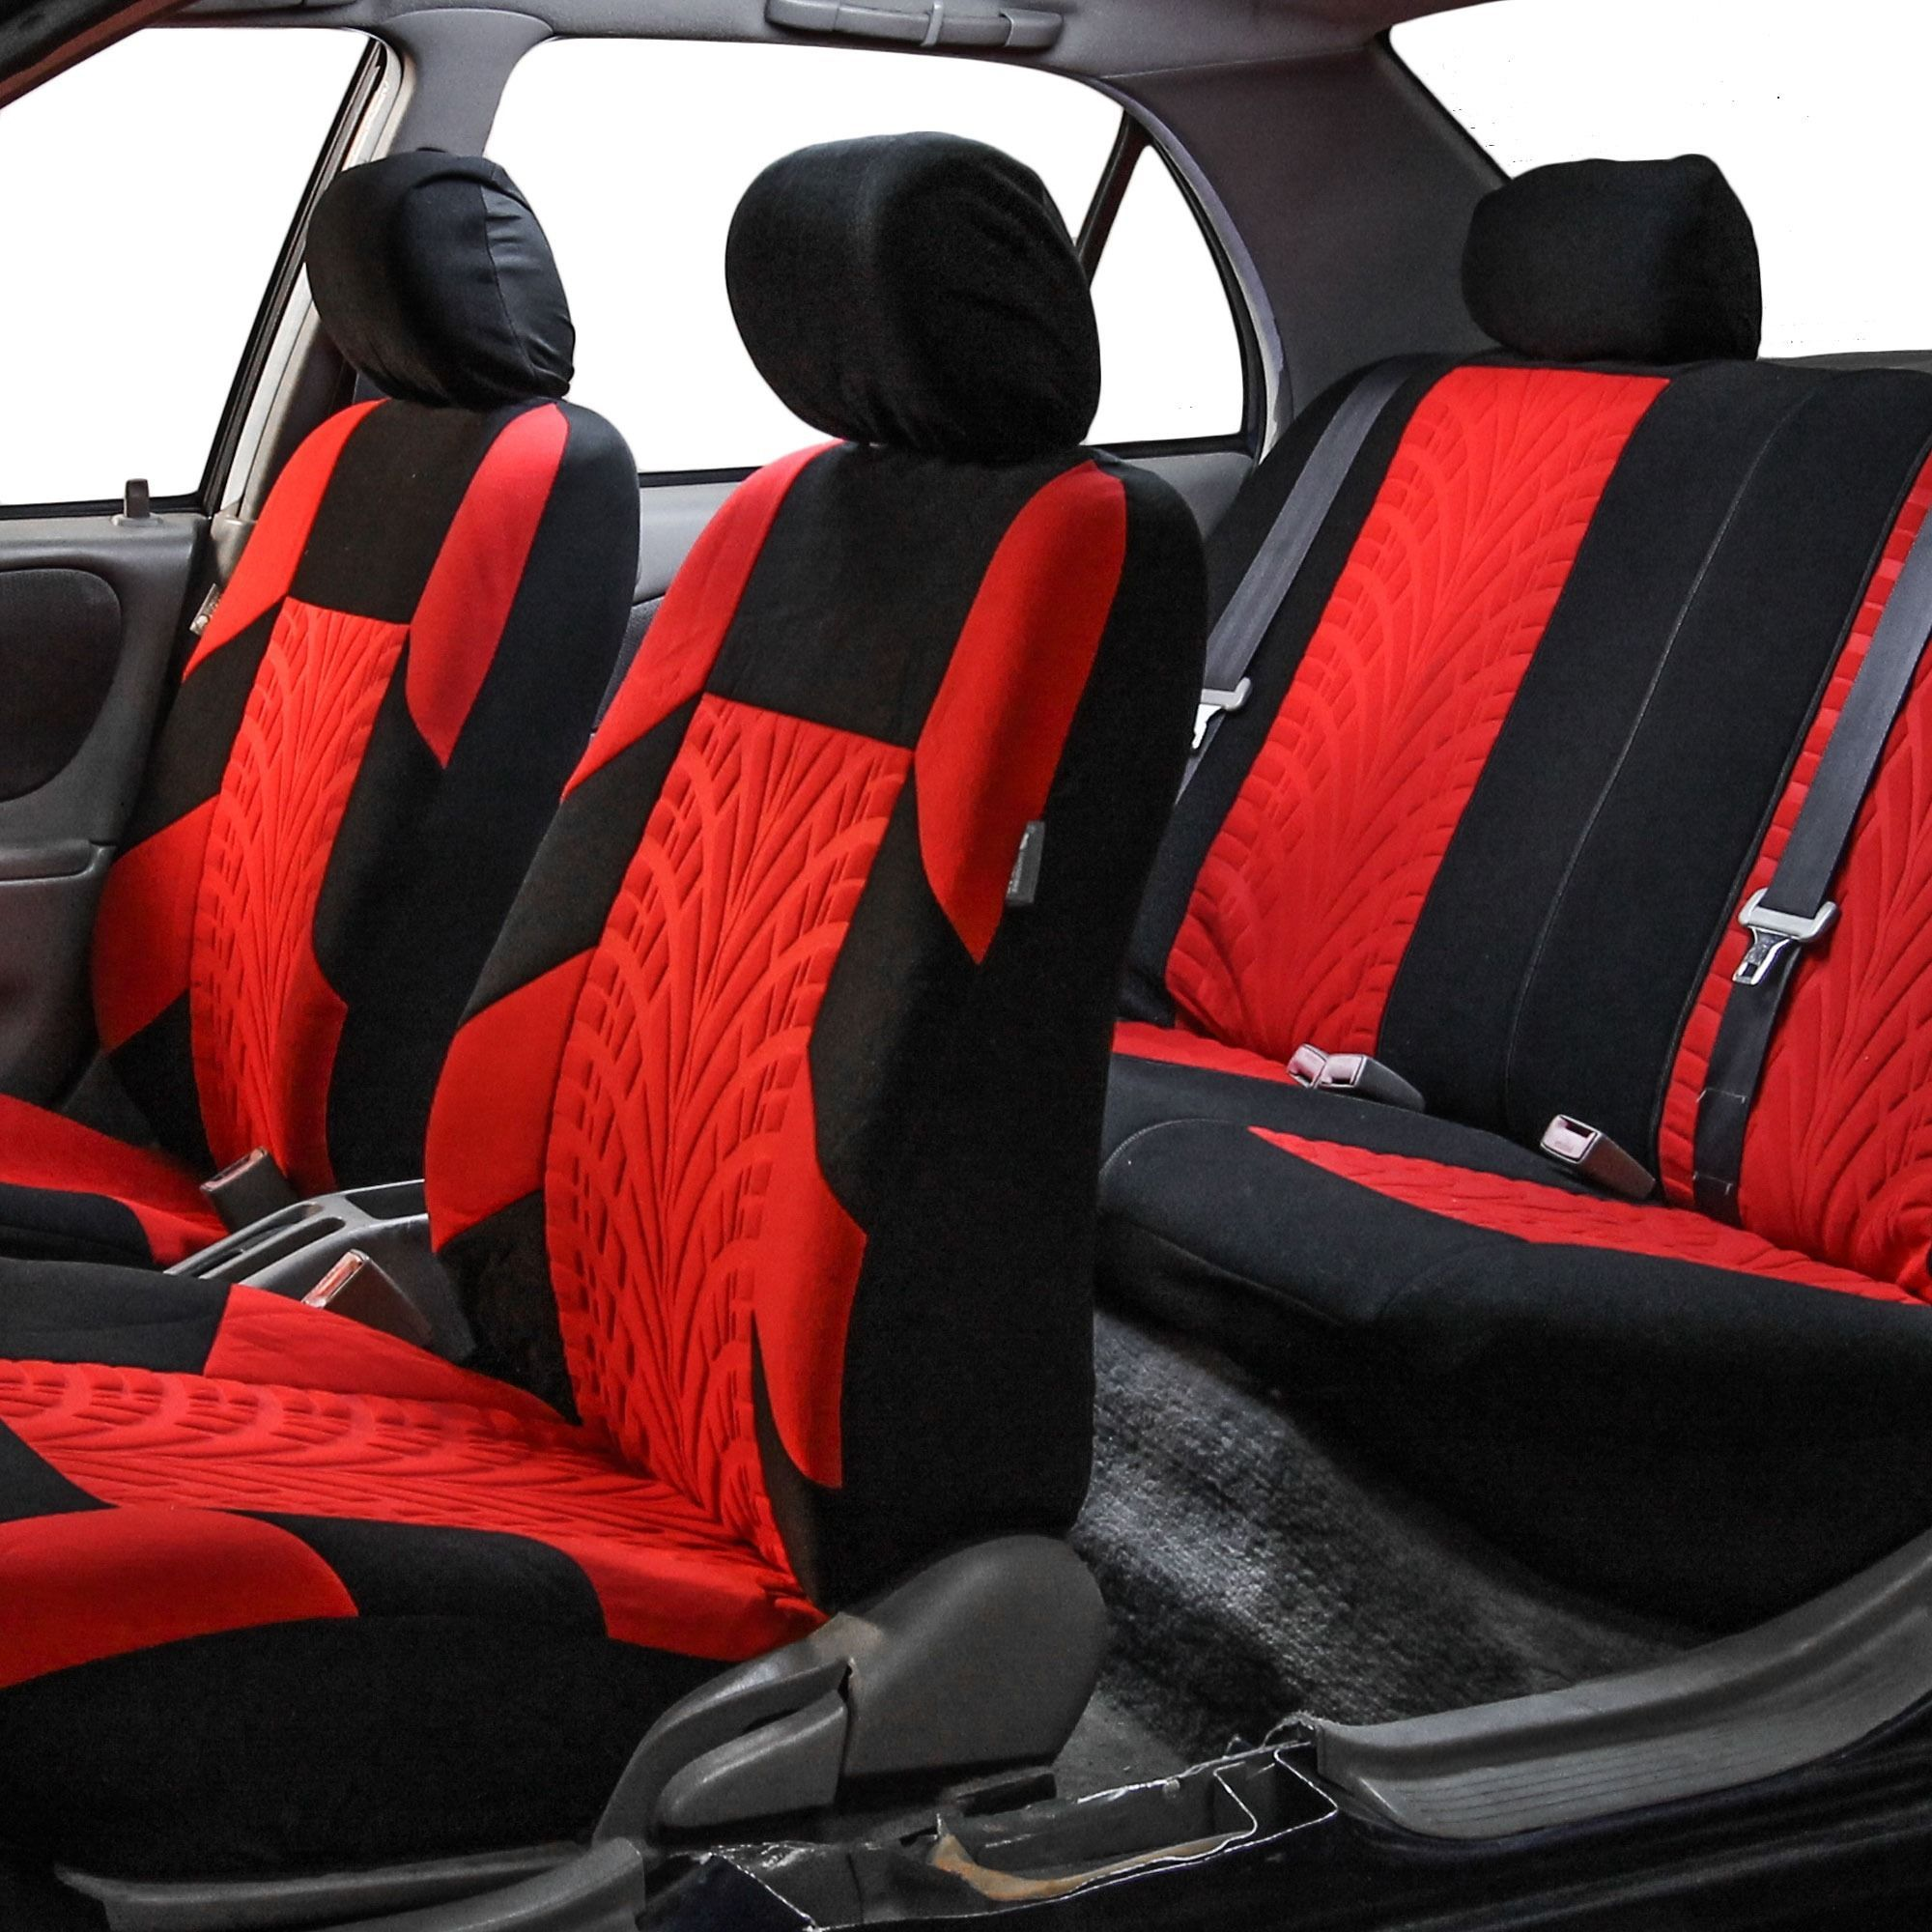 FH Group Red And Black Travel Master Car Seat Covers